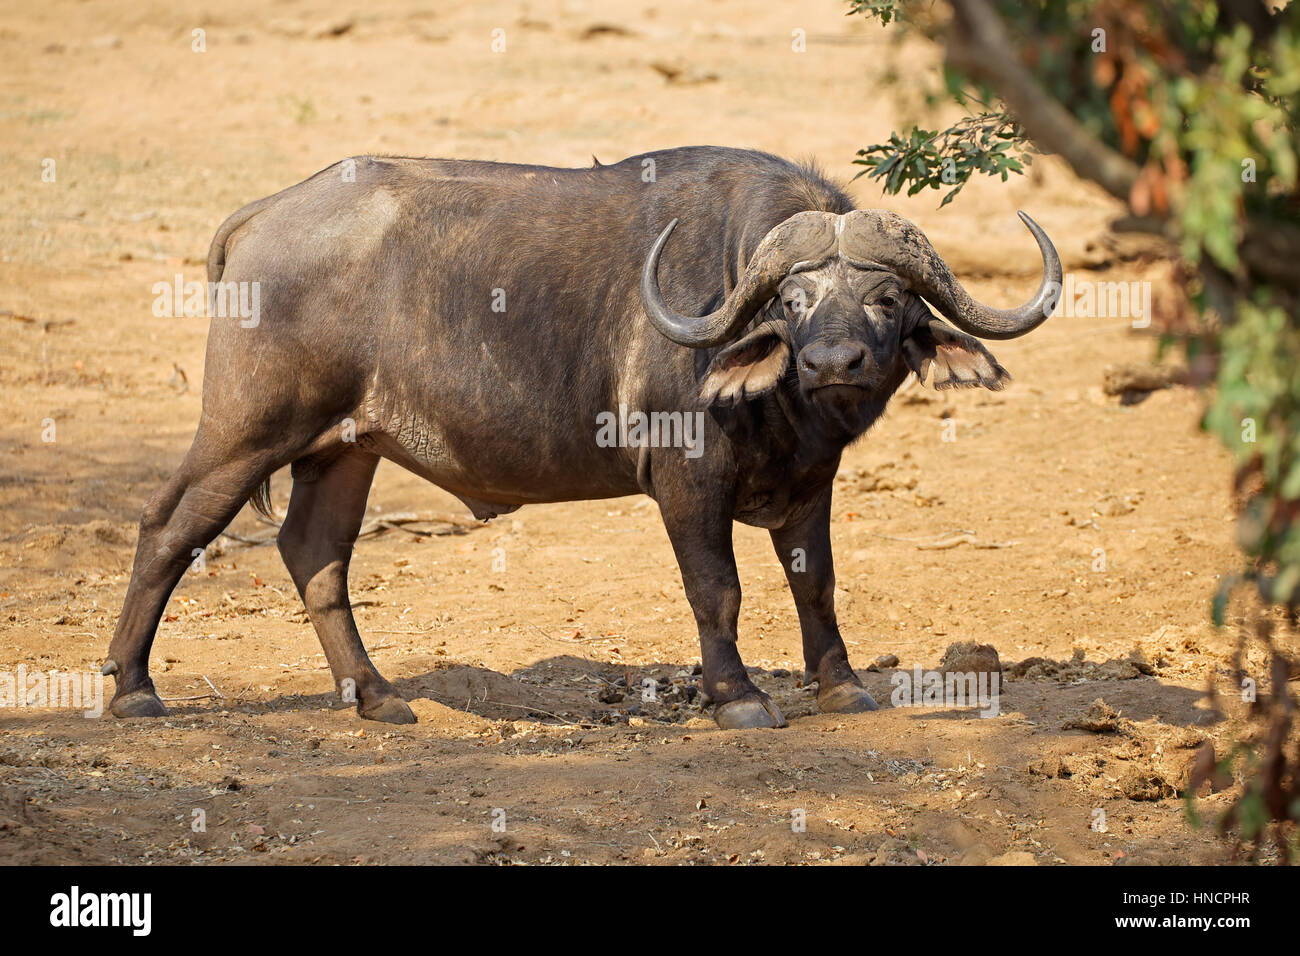 African buffalo (Syncerus caffer) in natural habitat, Kruger National Park, South Africa - Stock Image